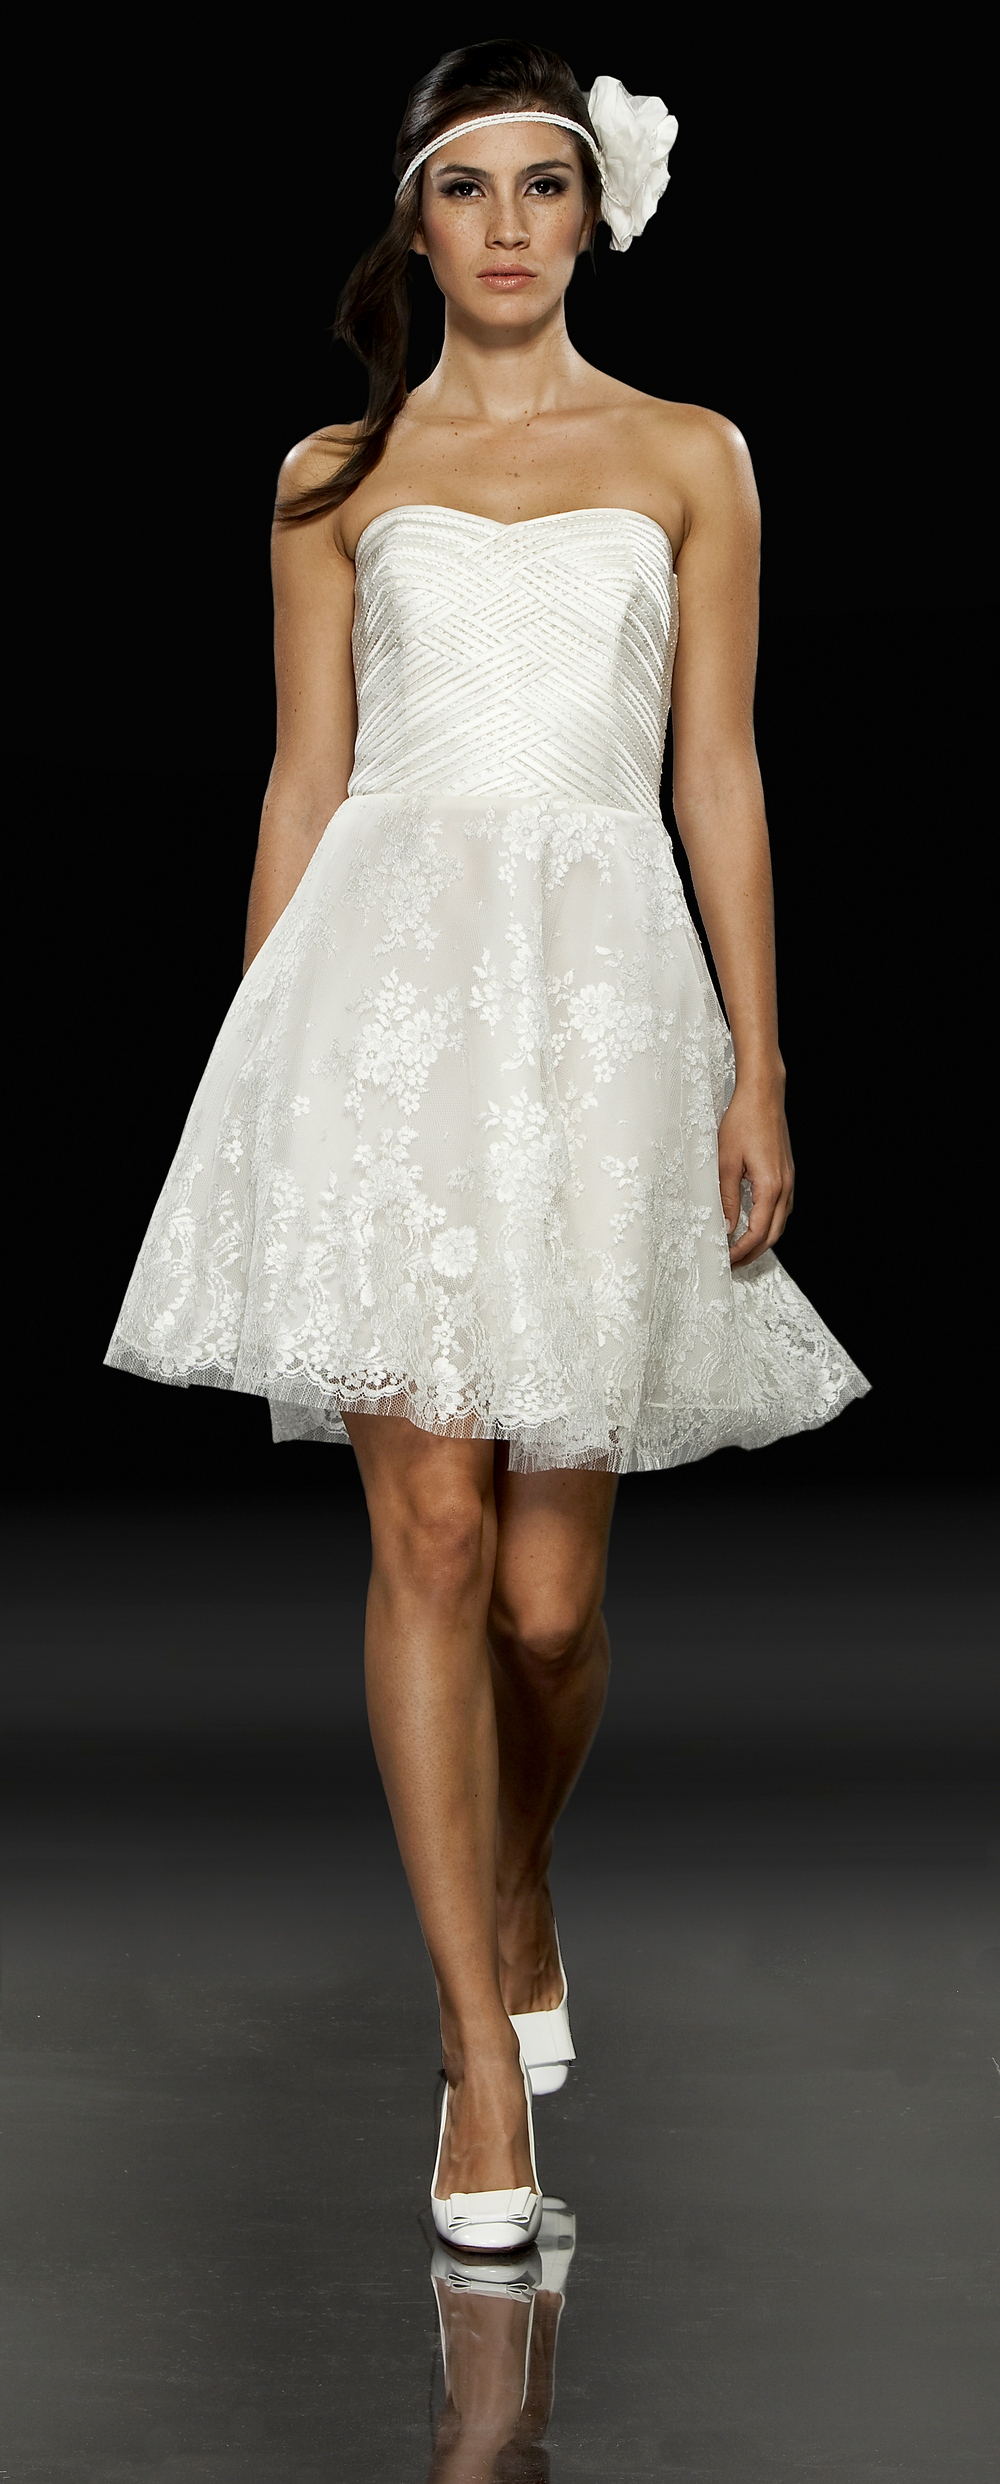 White Mini Wedding Reception Dress With Lace Skirt And Strapless Neckline O